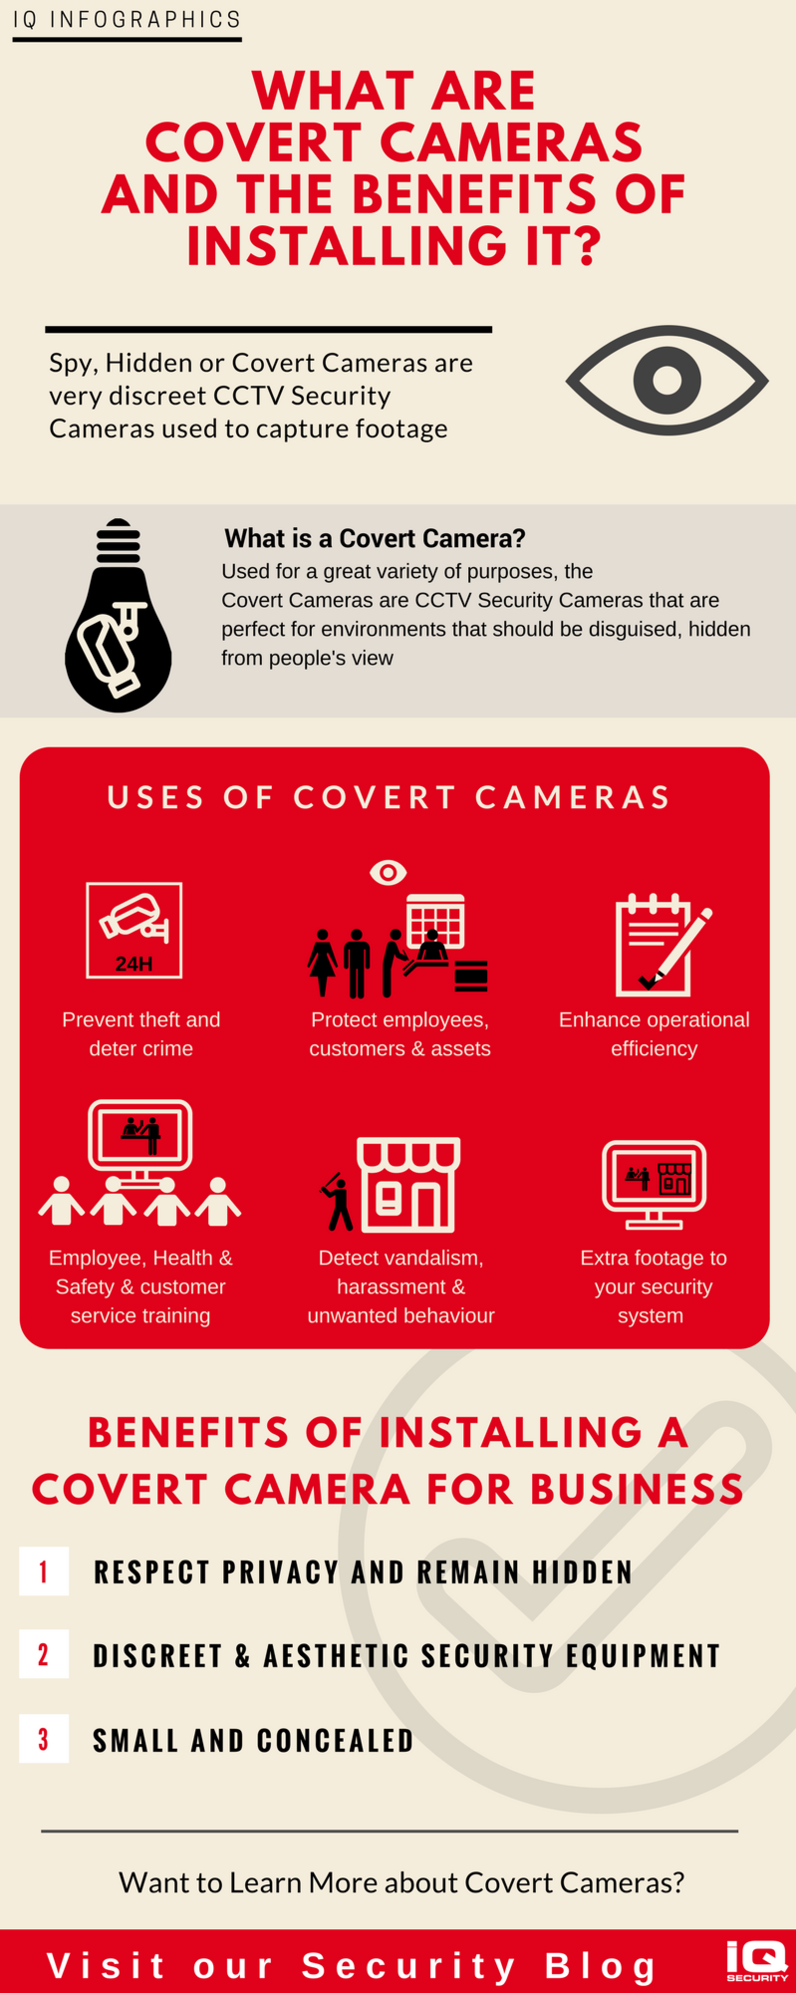 IQ Infographics Spy and Covert Cameras Benefits for Businesses